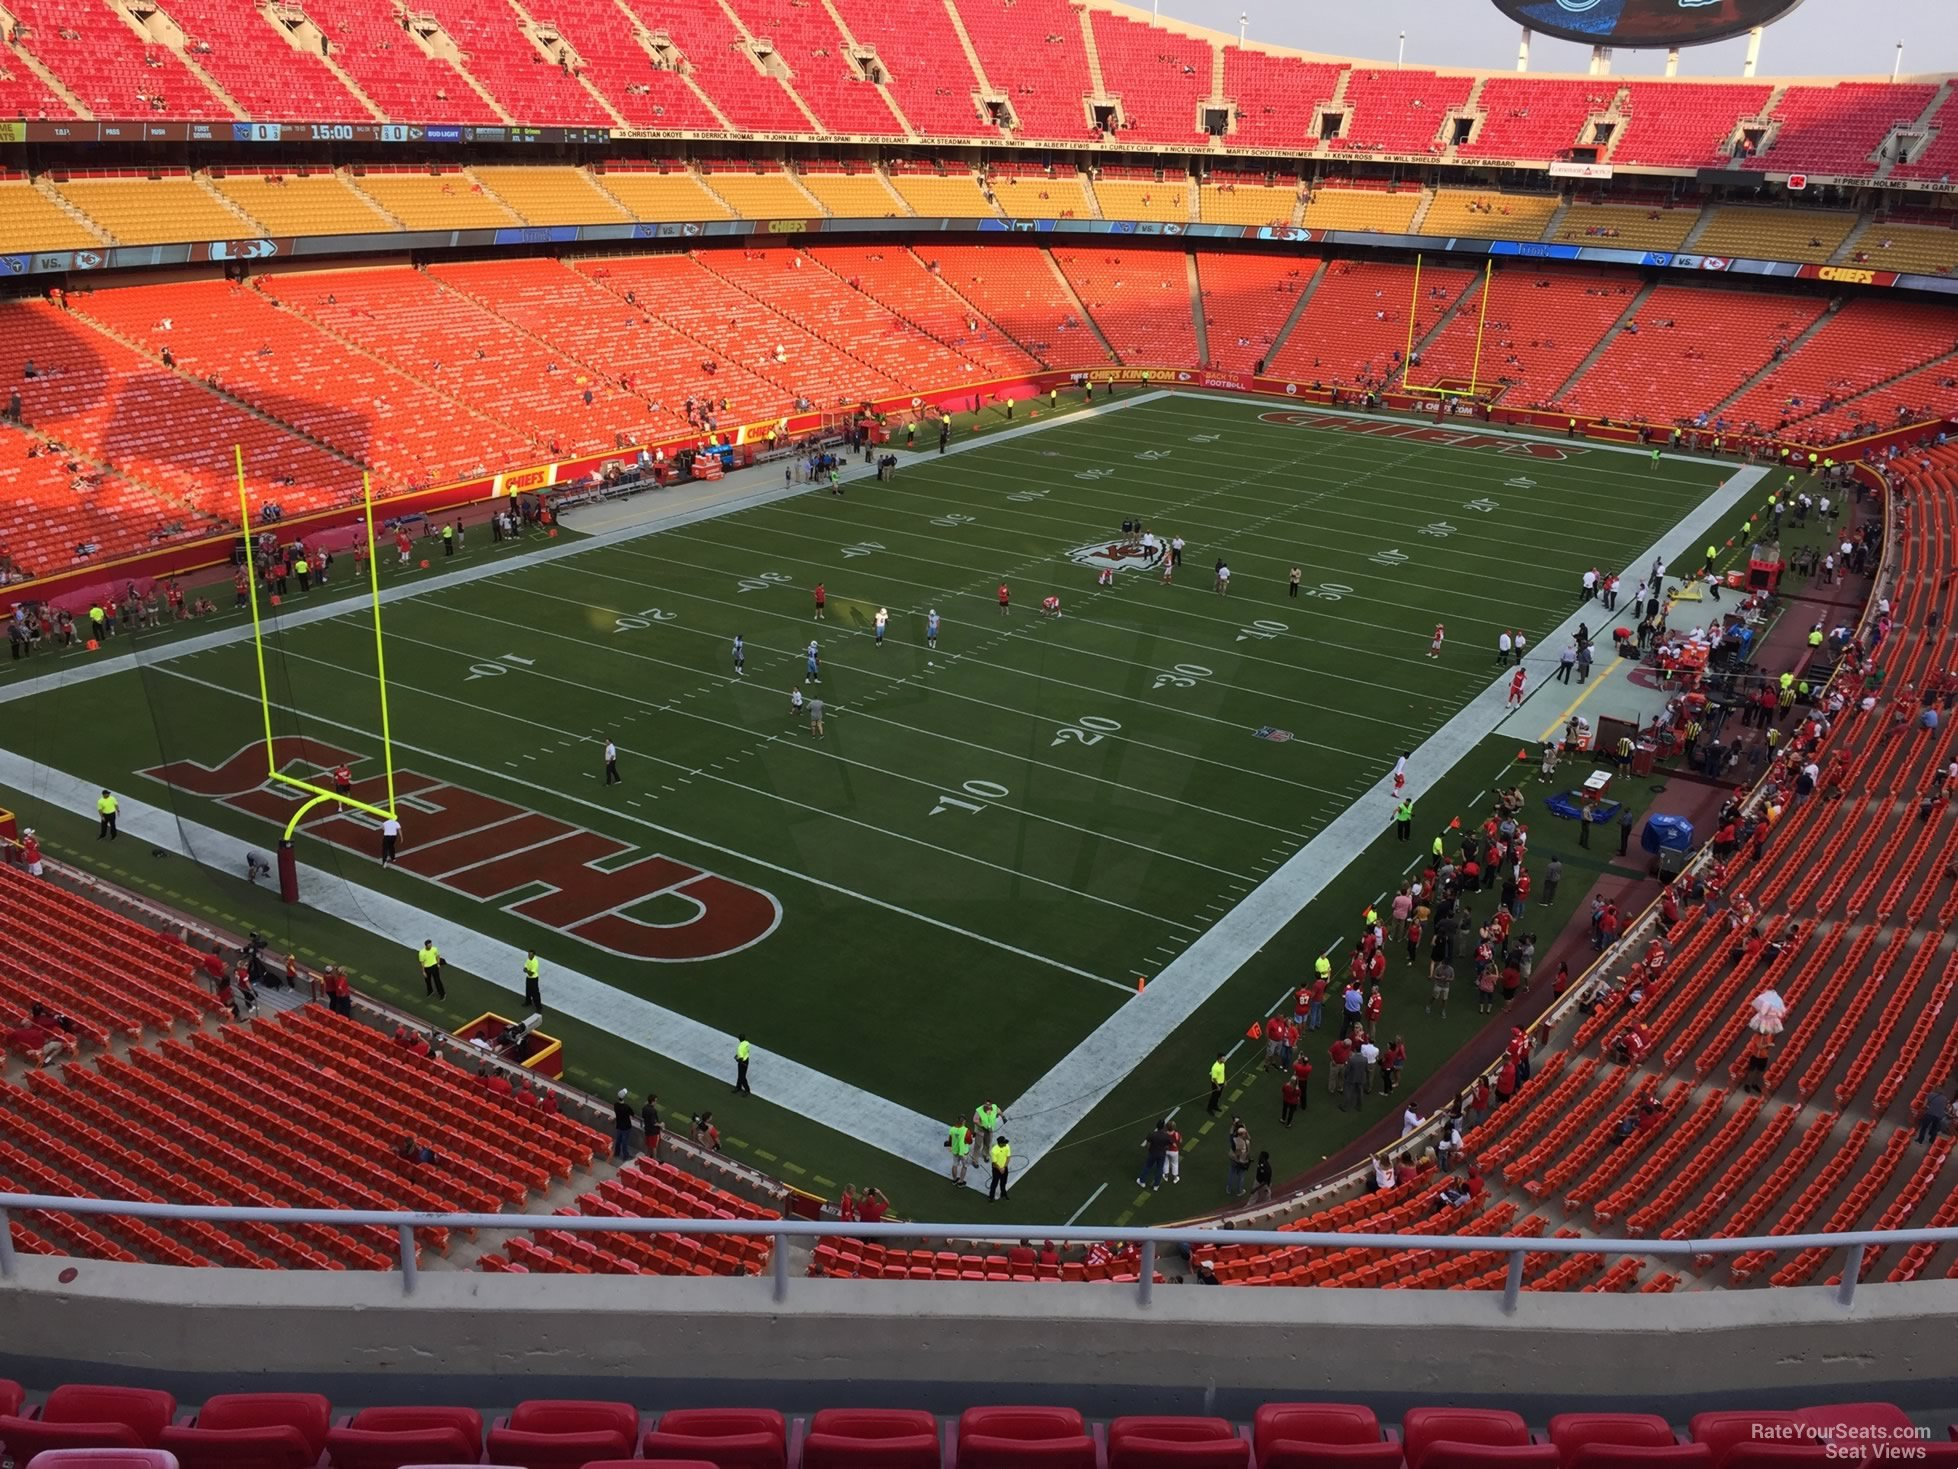 Seat View for Arrowhead Stadium Section 332, Row 7